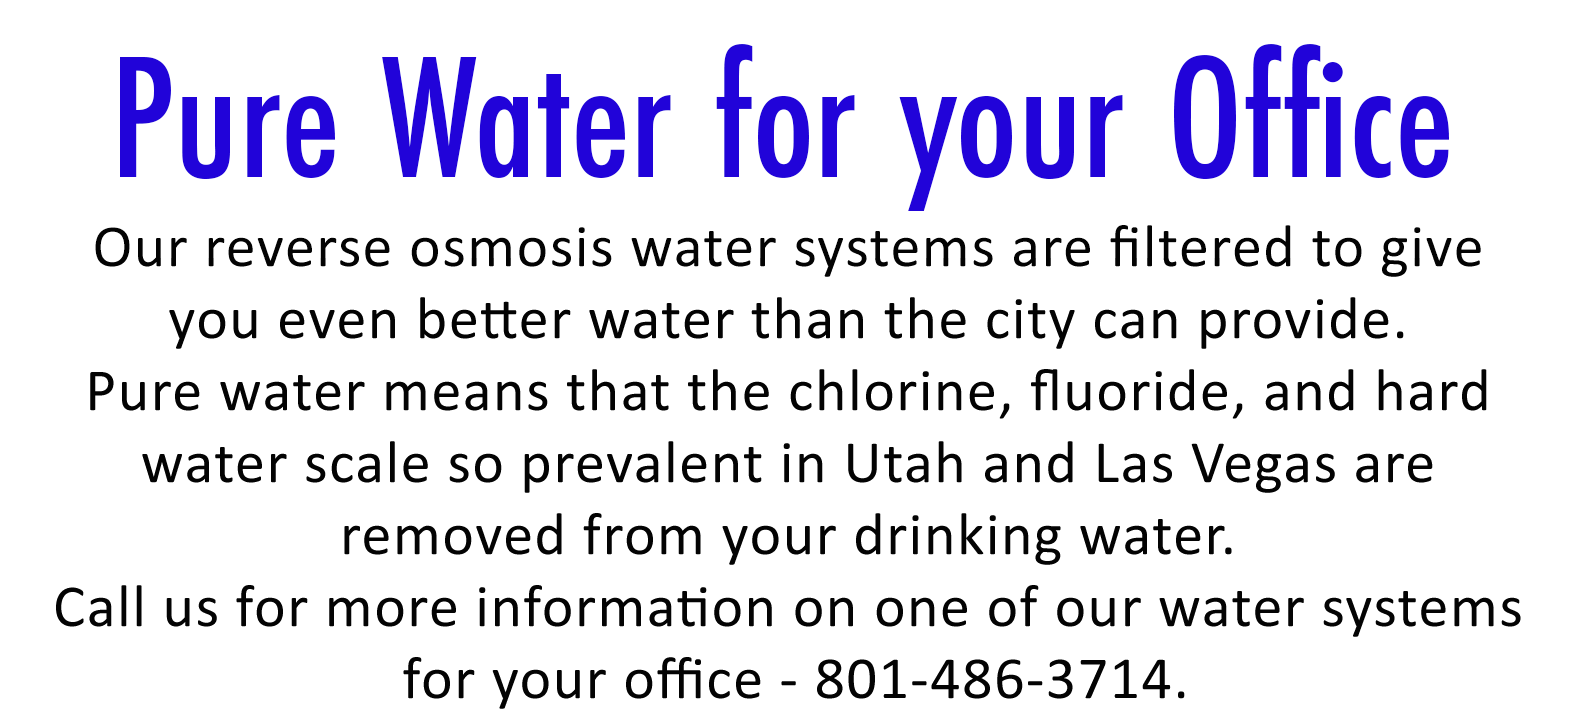 PureWater_withText.png